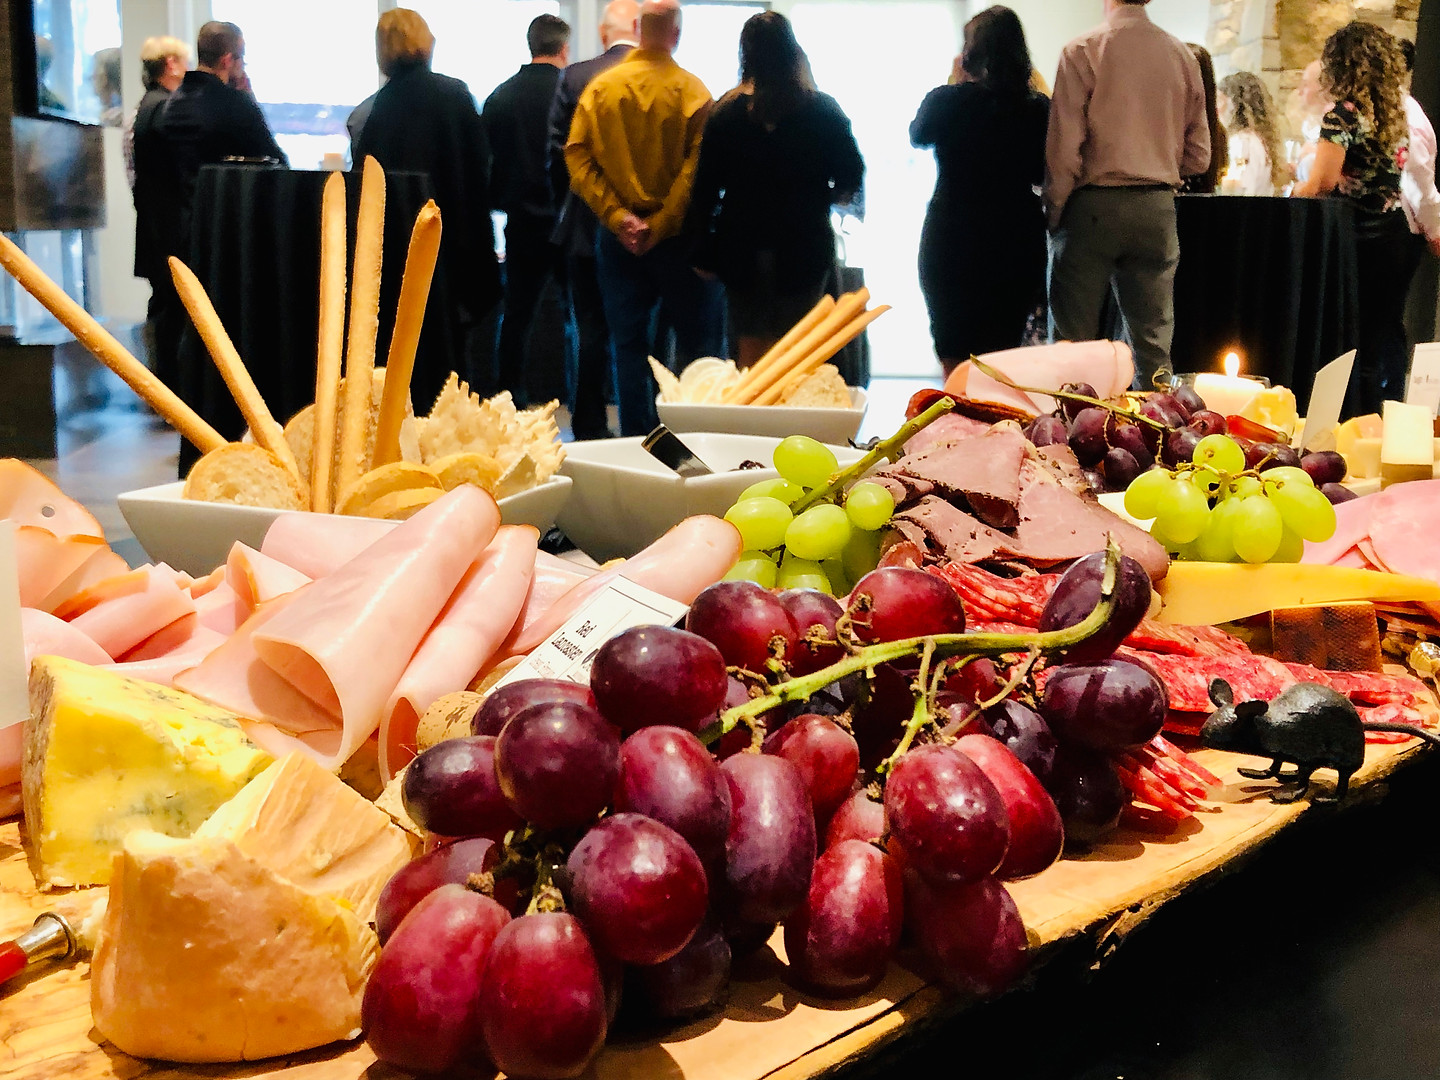 Hire a Chef Toronto for Charcuterie Boards with Character